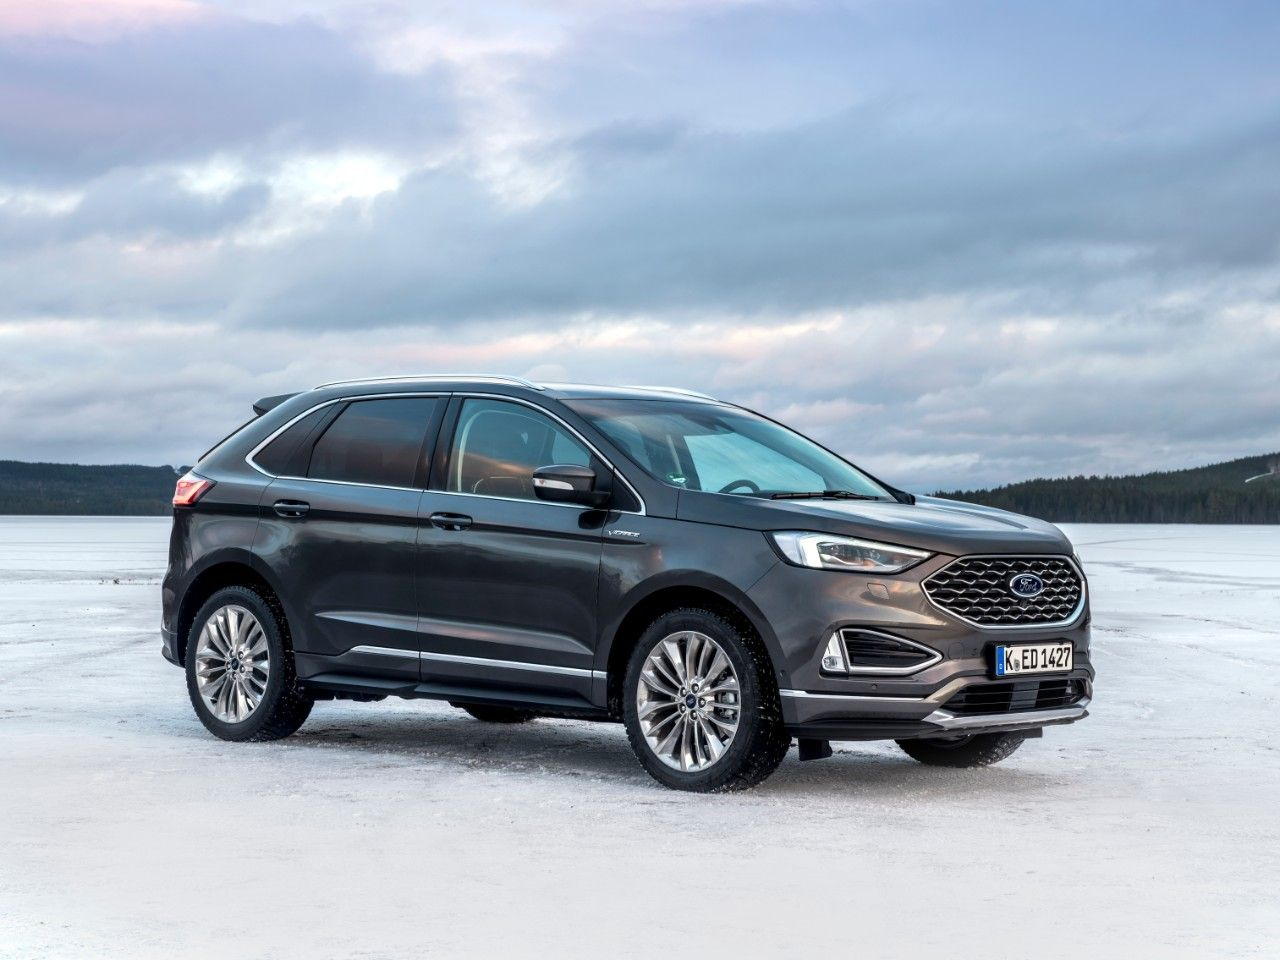 New Ford Edge Suv Uses Artificial Intelligence To Help Improve